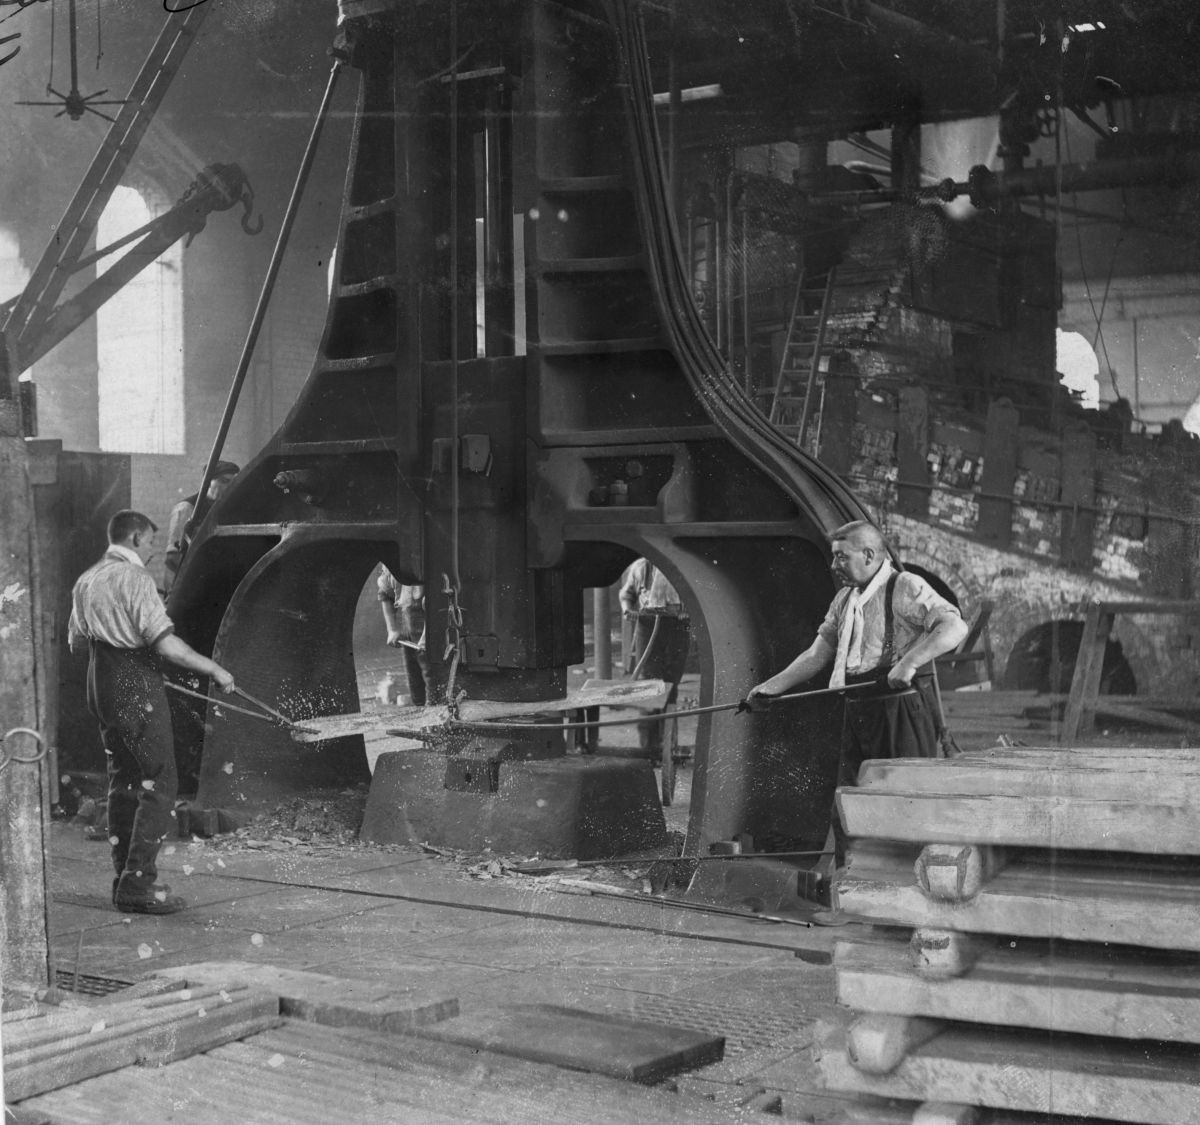 Steel workers in Pittsburgh, Pennsylvania, where the Bessemer Converter was in use manhandling a piece of hot steel.